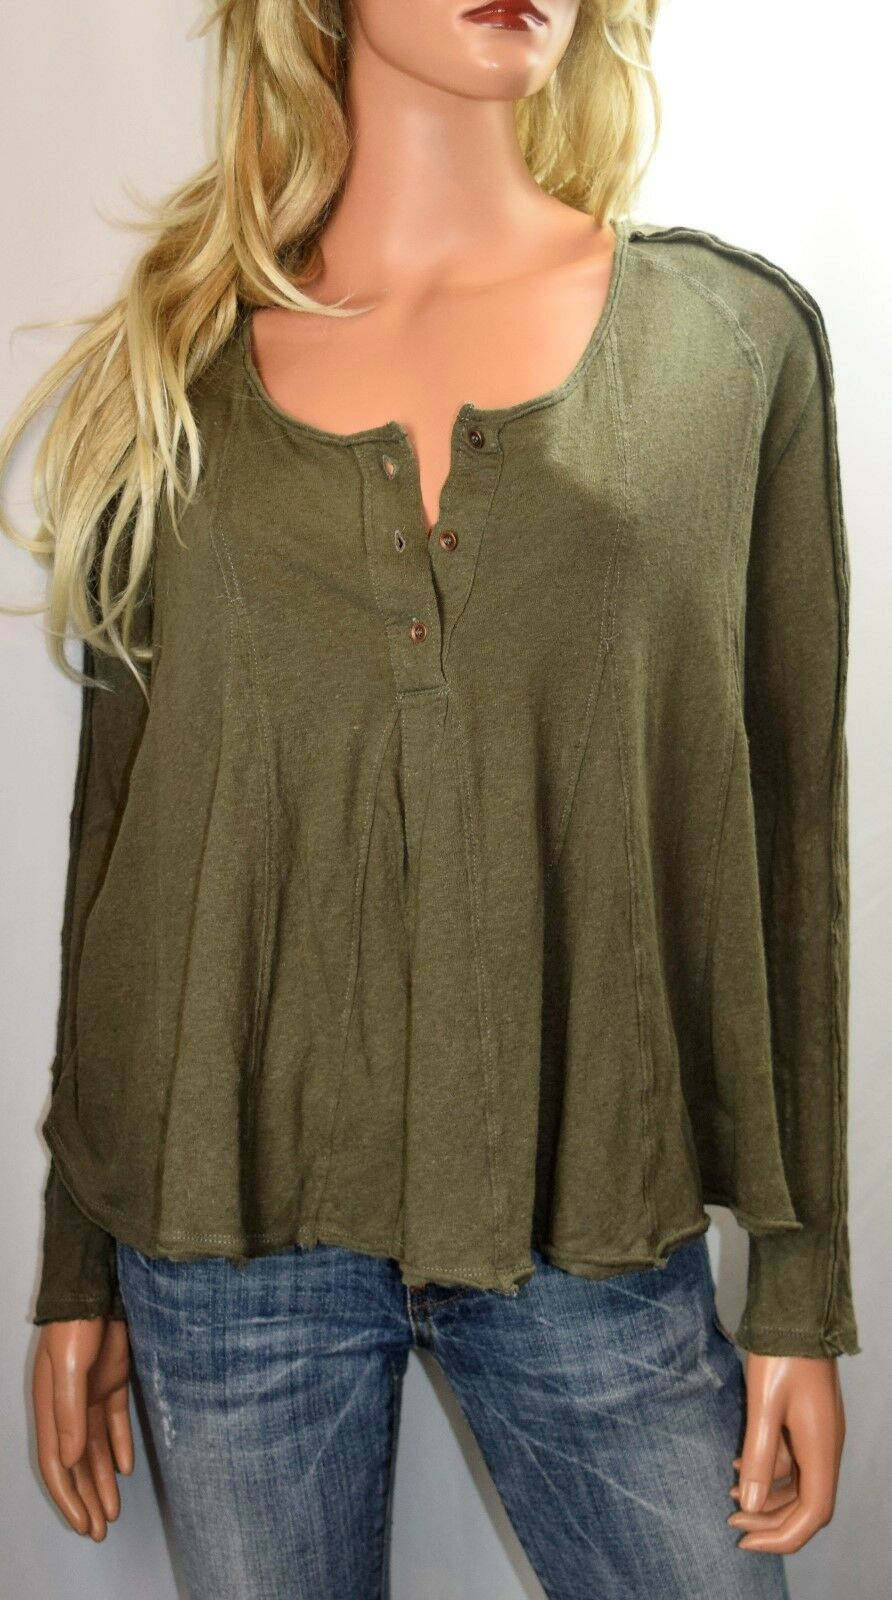 NWT FREE PEOPLE Anthropologie Size L LITA Embroidered Cotton//Linen knit Top